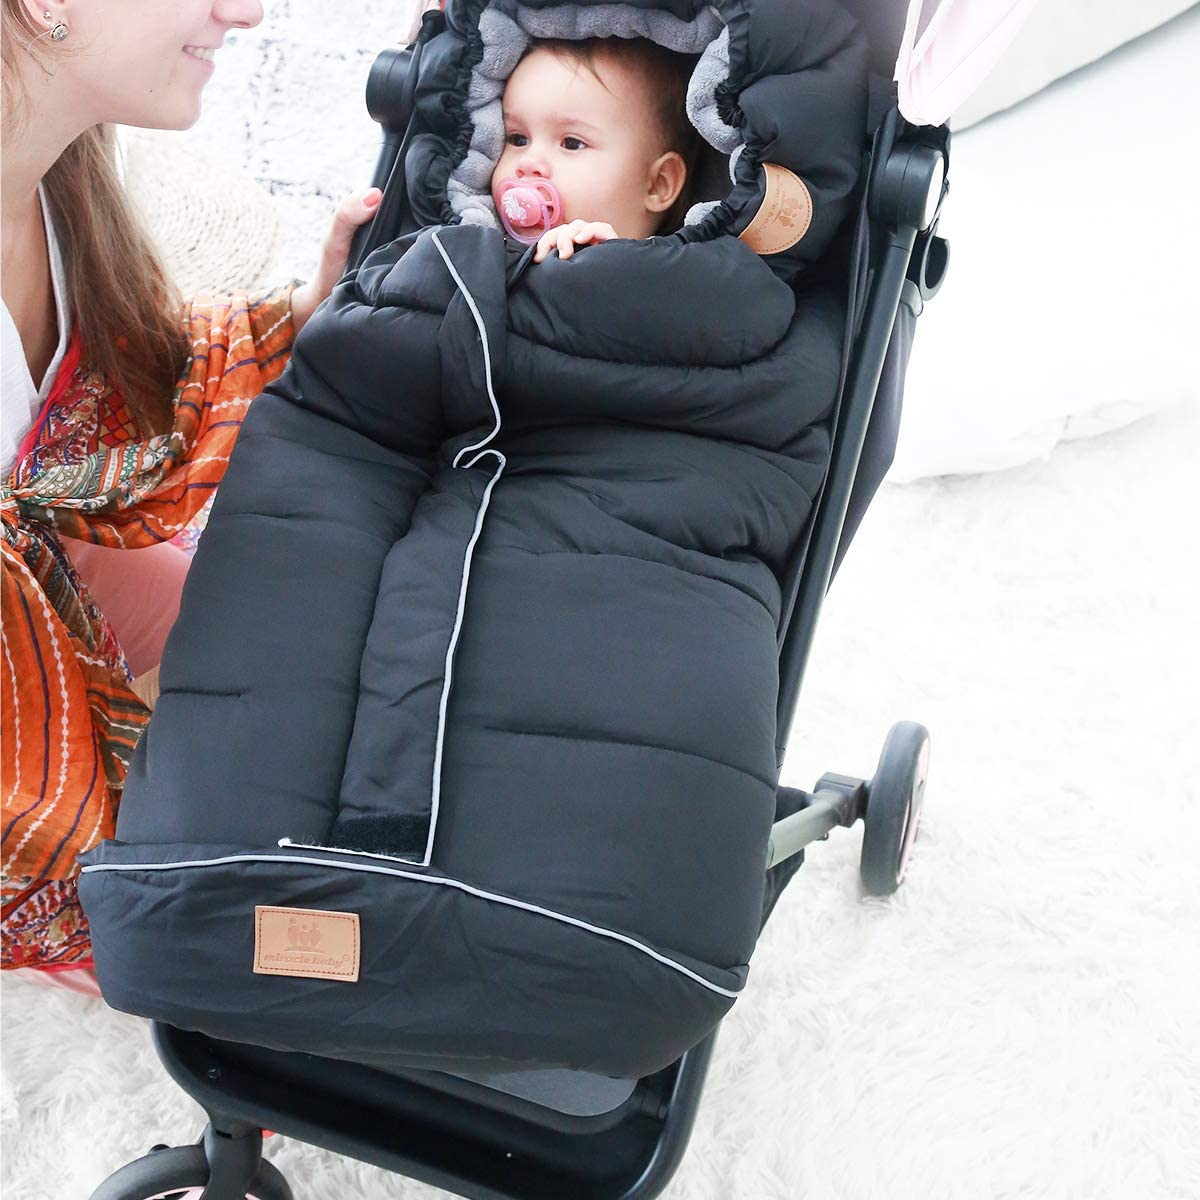 A bunting bag allows you to take your newborn outside despite the weather! - Top 13 Parent-approved Best Stroller Accessories Ideas | Baby Journey